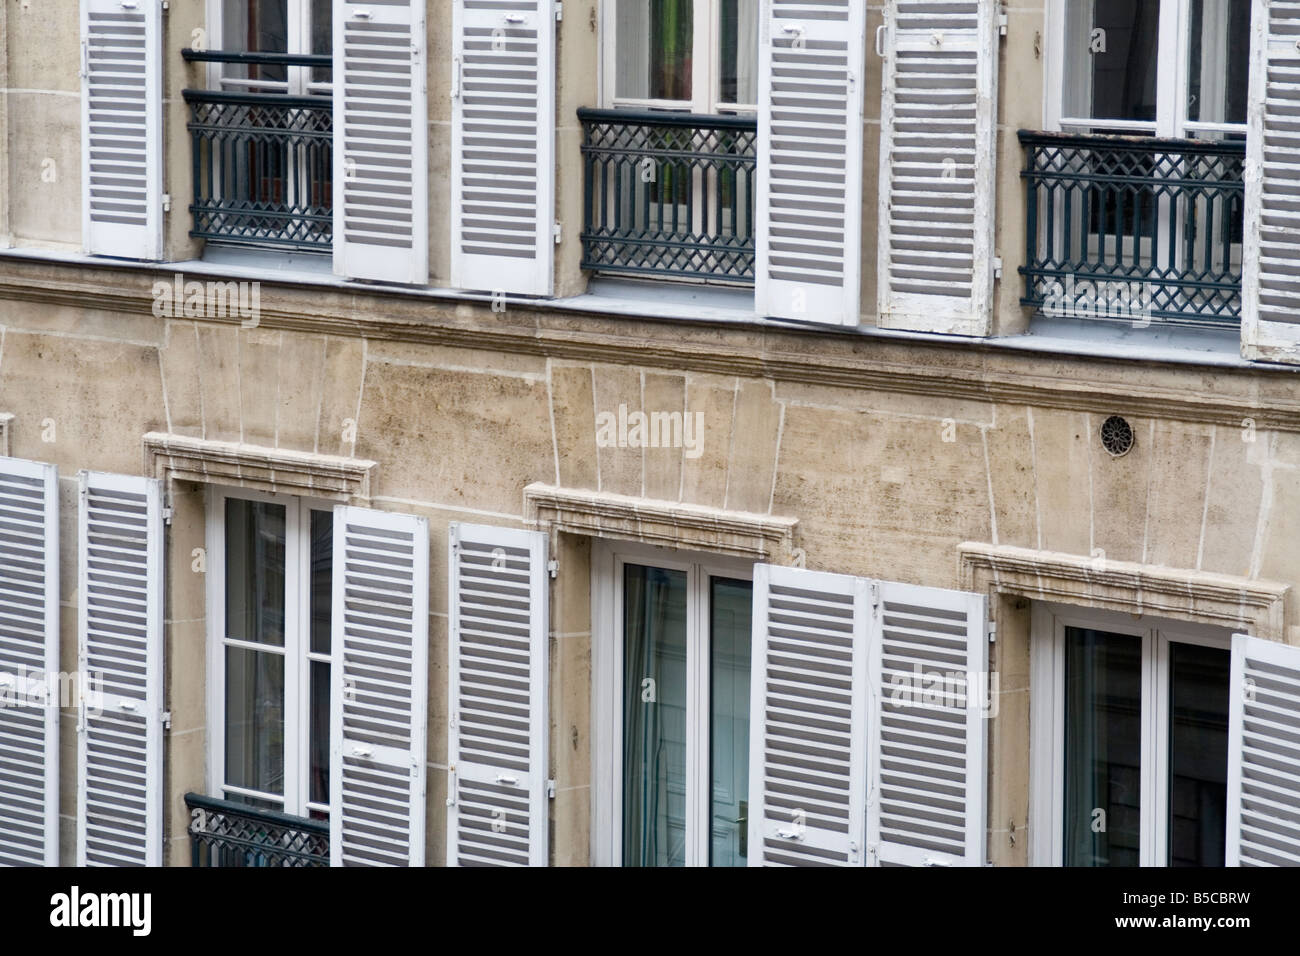 façade windows shutters juliet balcony metal stone building